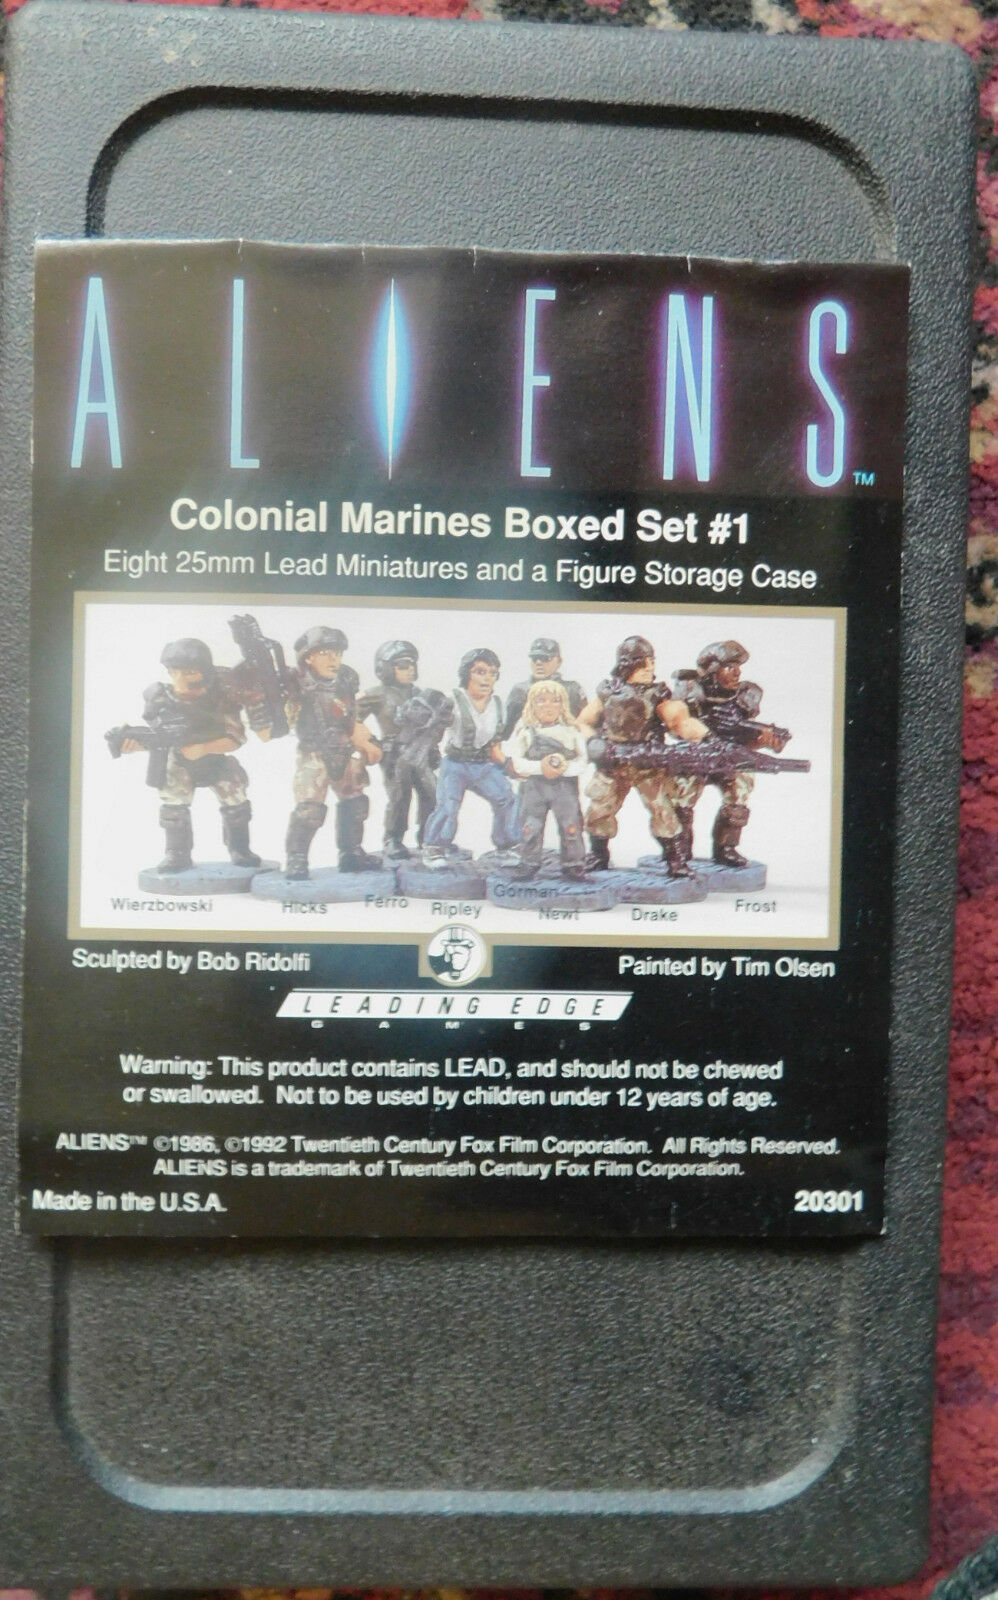 Aliens colonial marine miniatures boxed boxed boxed set 1 ( metal painted) 1992 be1d2d